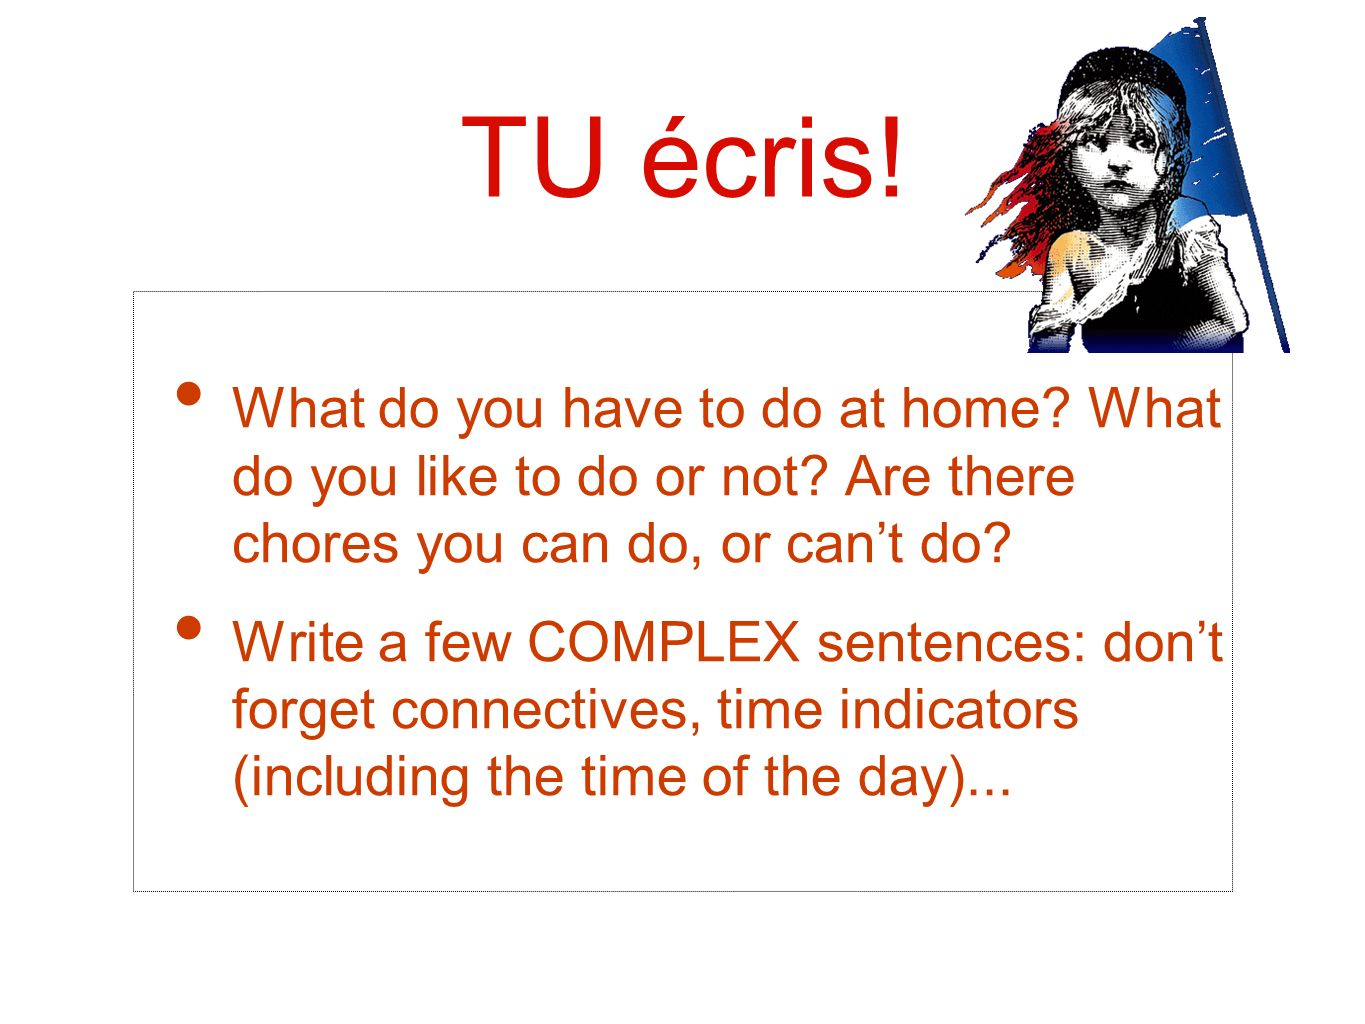 TU écris! What do you have to do at home What do you like to do or not Are there chores you can do, or can't do